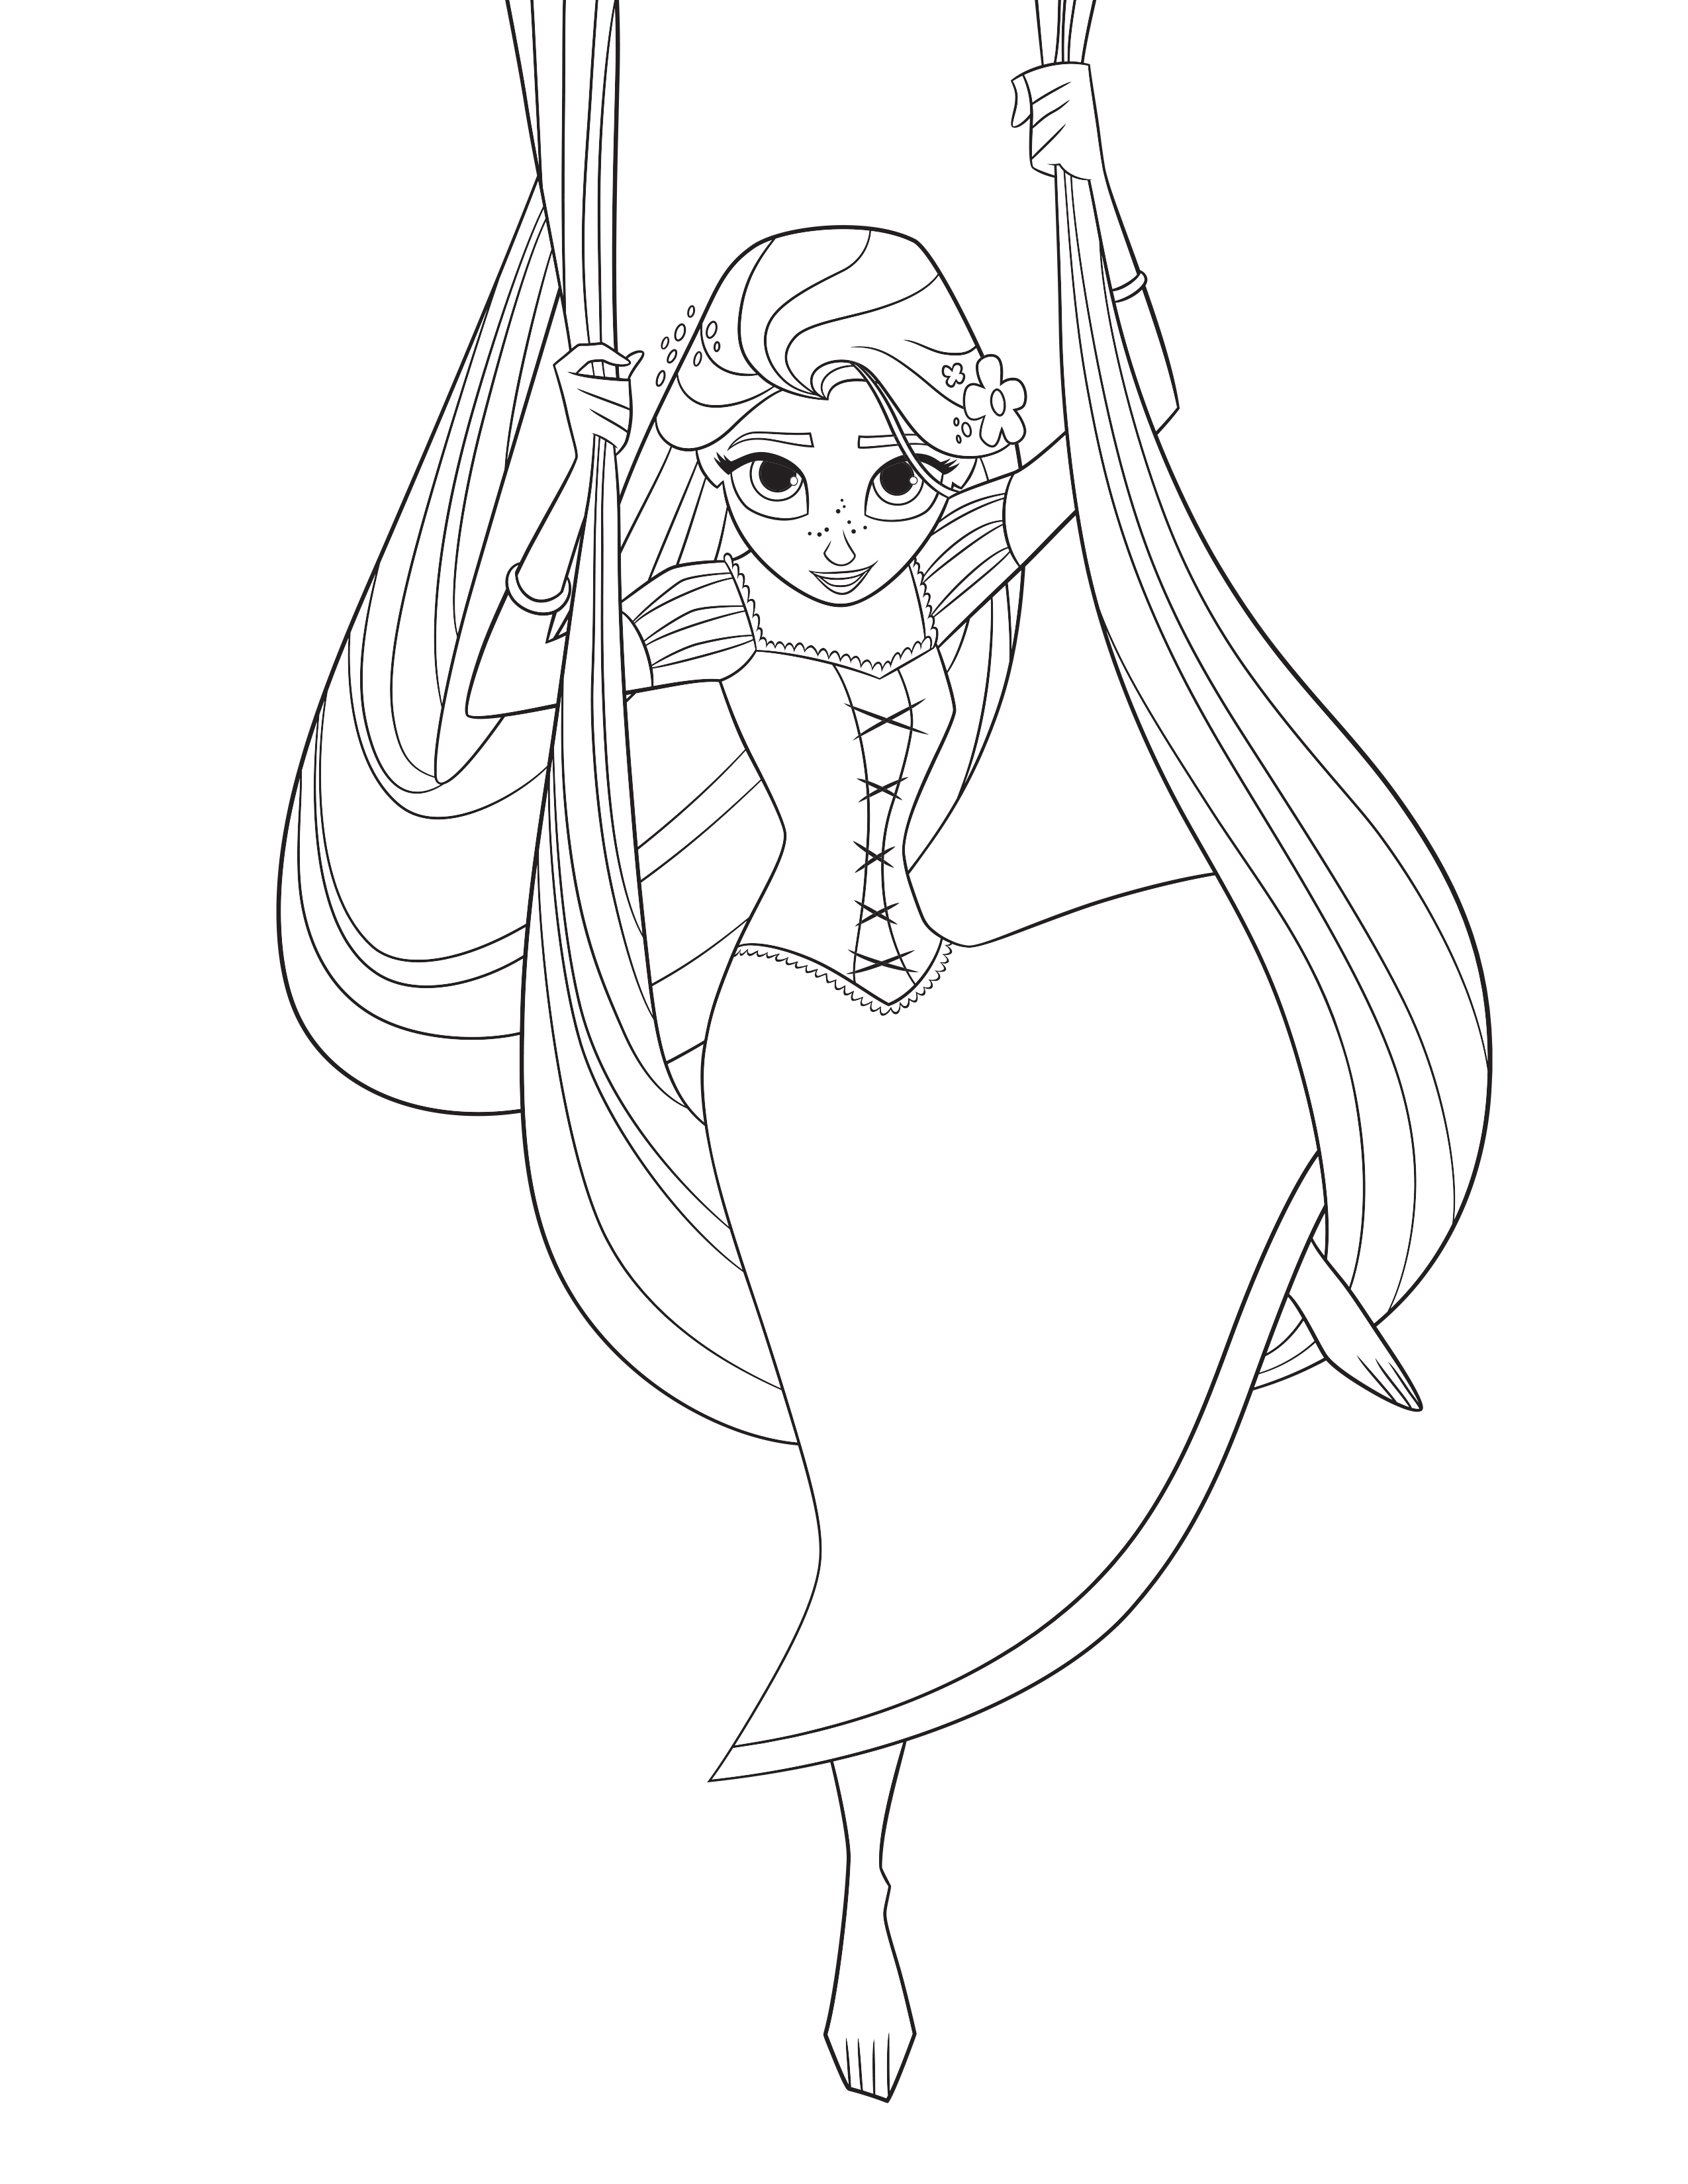 Tangled The Series Coloring Pages